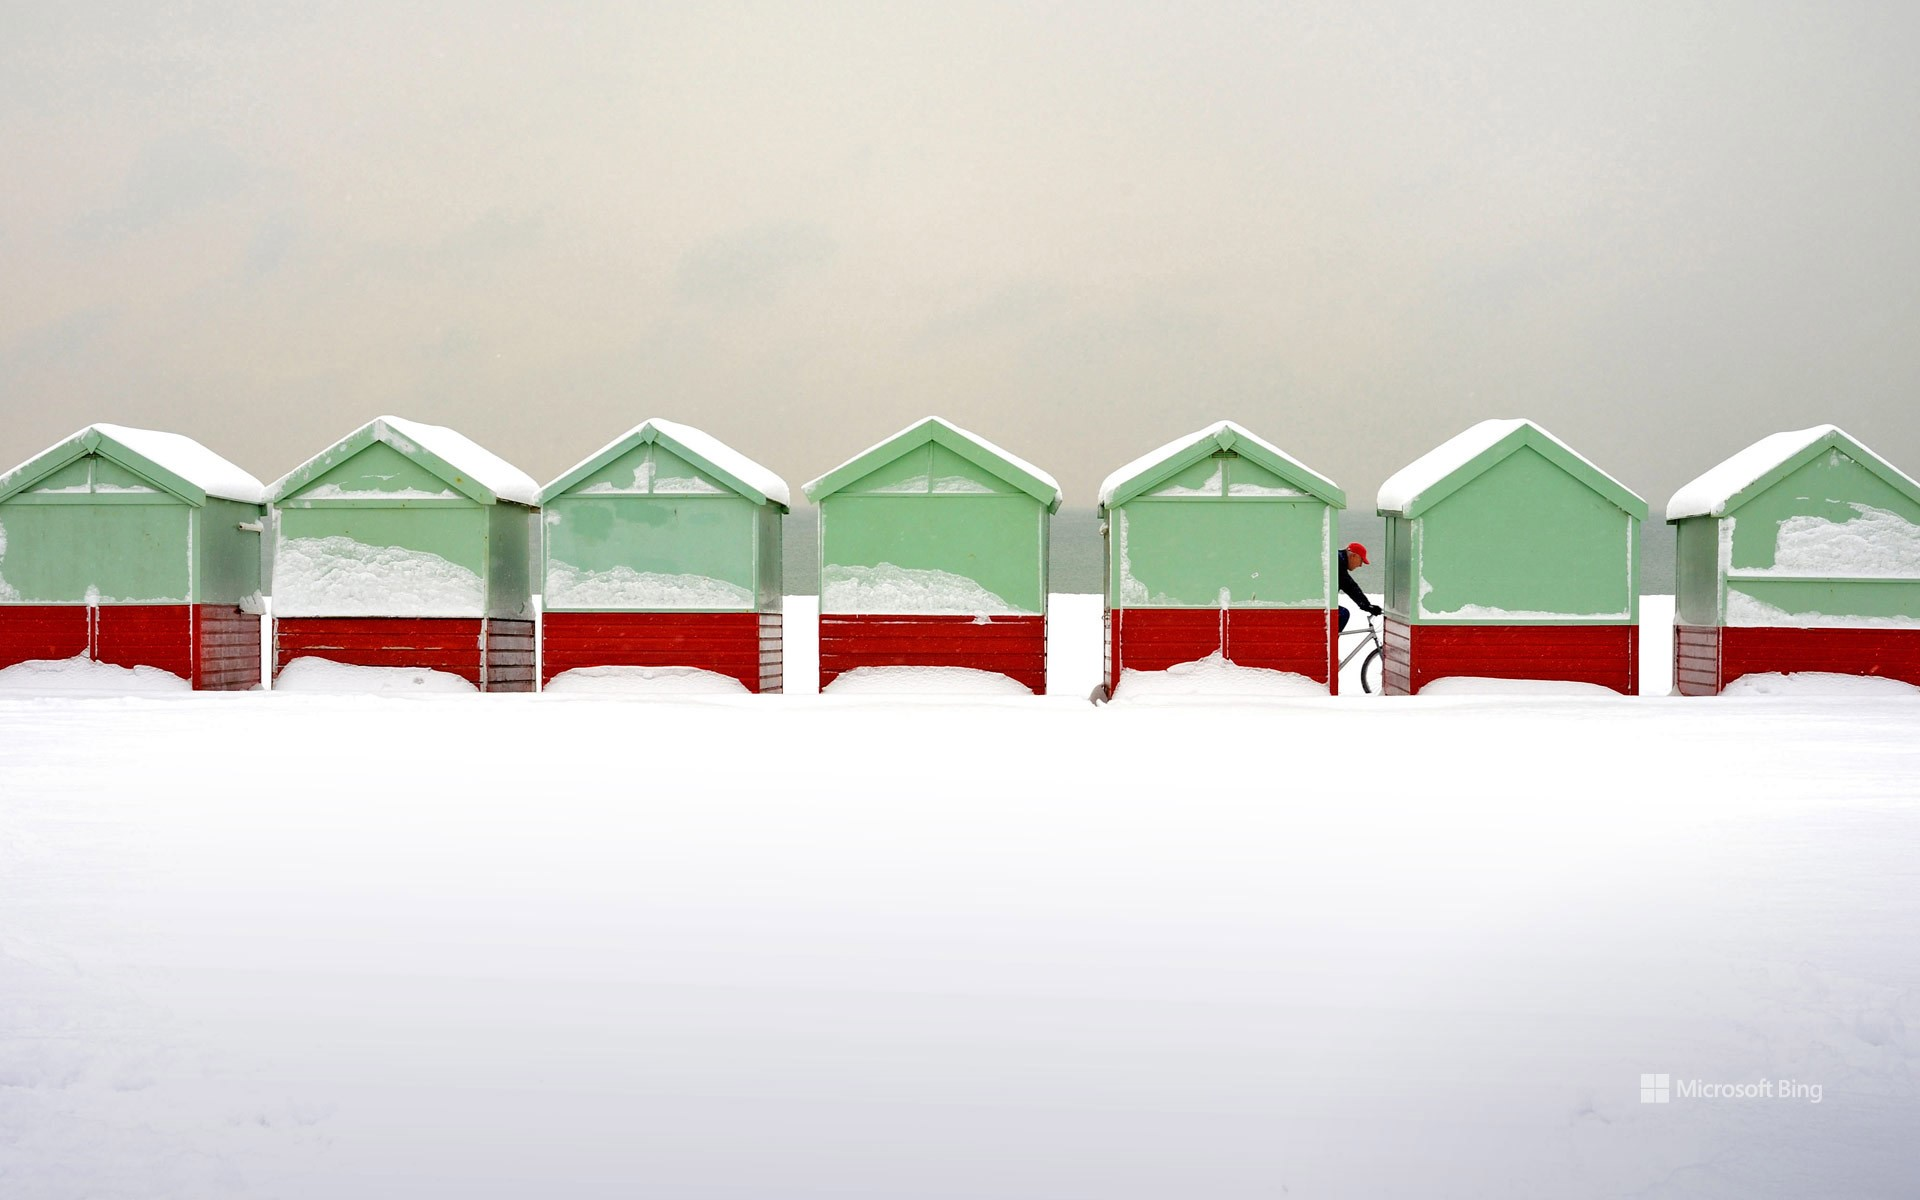 Beach huts covered in snow in Brighton and Hove, England